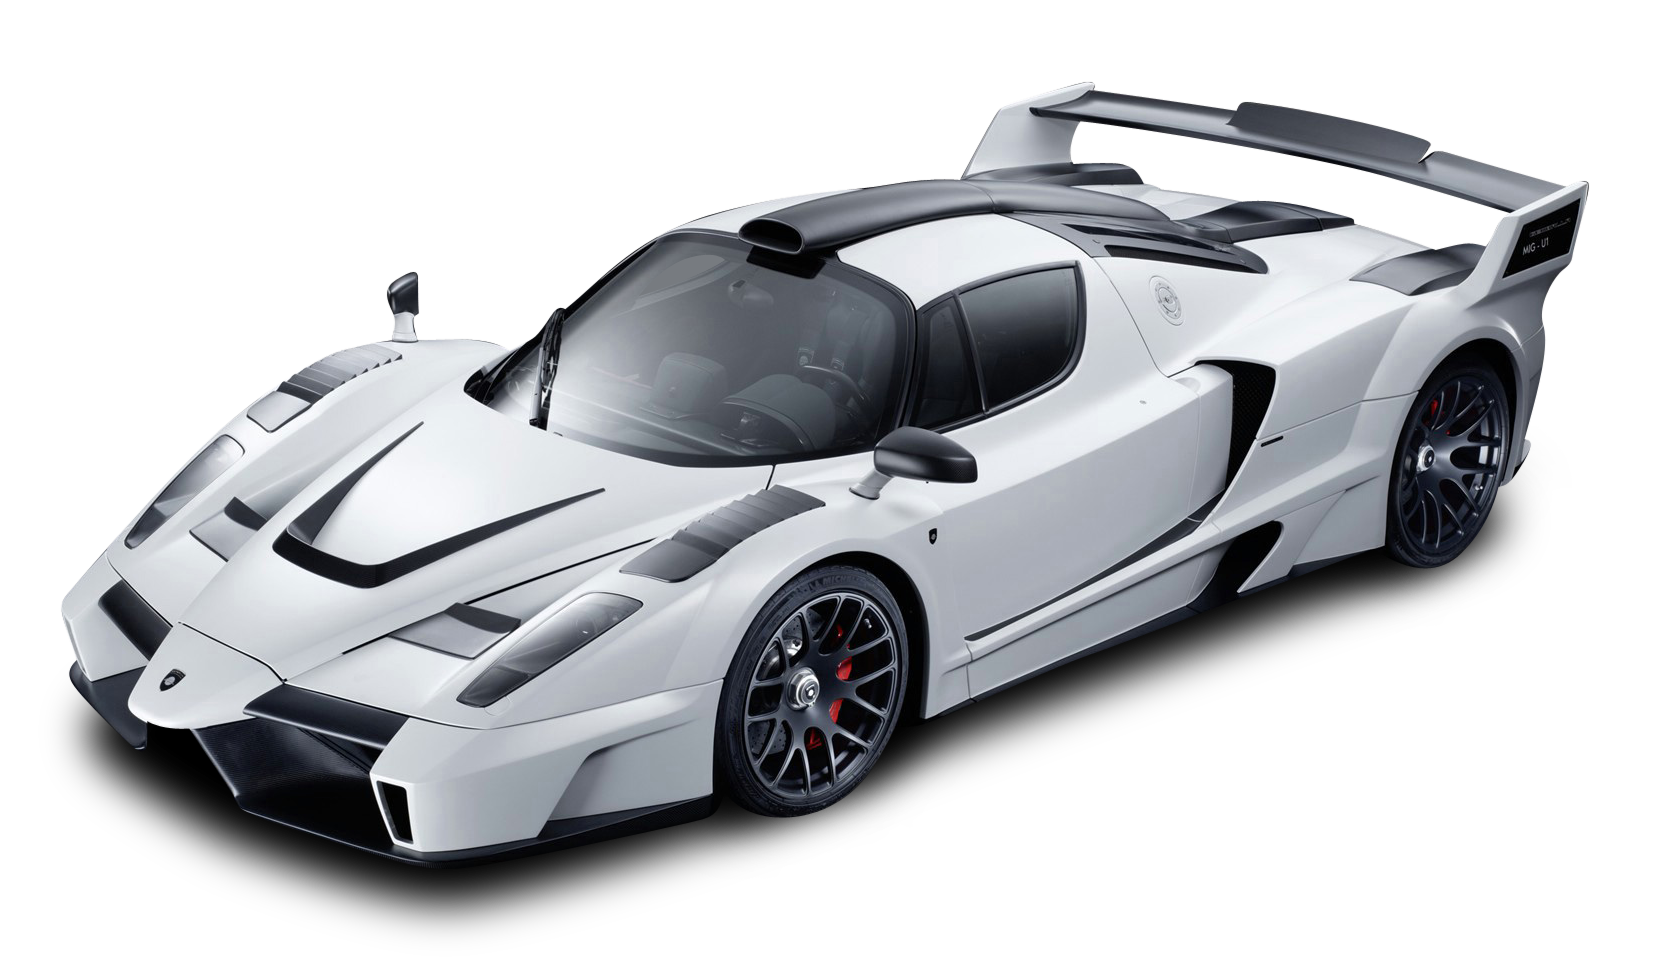 car helicopter with White Ferrari Enzo Racing Car   Image on Delivering Icons in addition Helicopter Tour also Uzbekistan Tour in addition Lamborghini Countach Lp400 Periscopio further Suzuki Jimny Cartoon 1194.